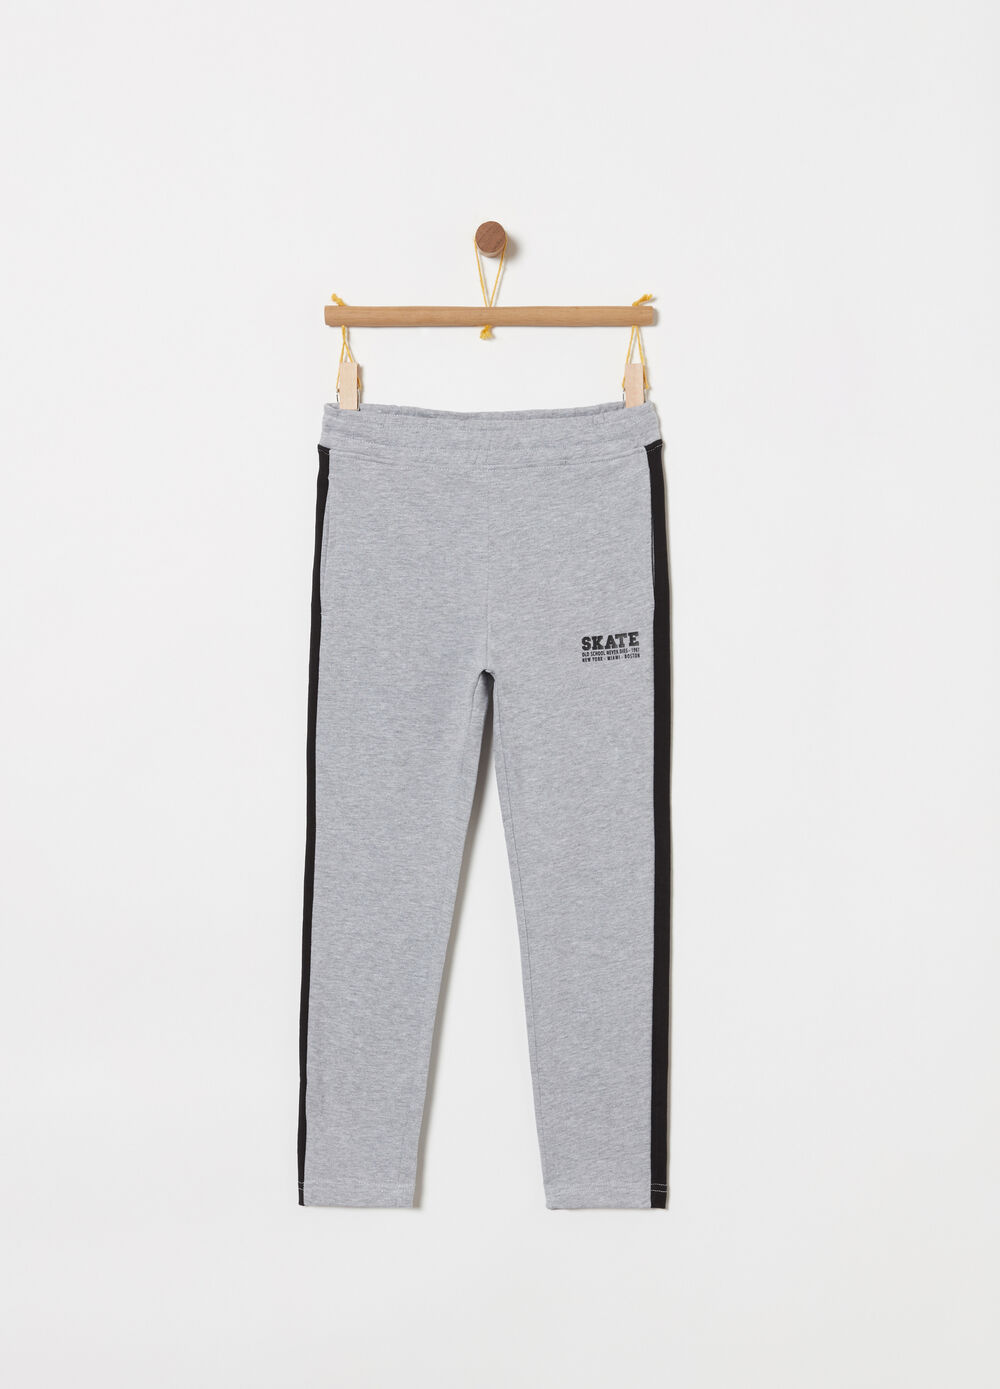 French Terry trousers with side bands